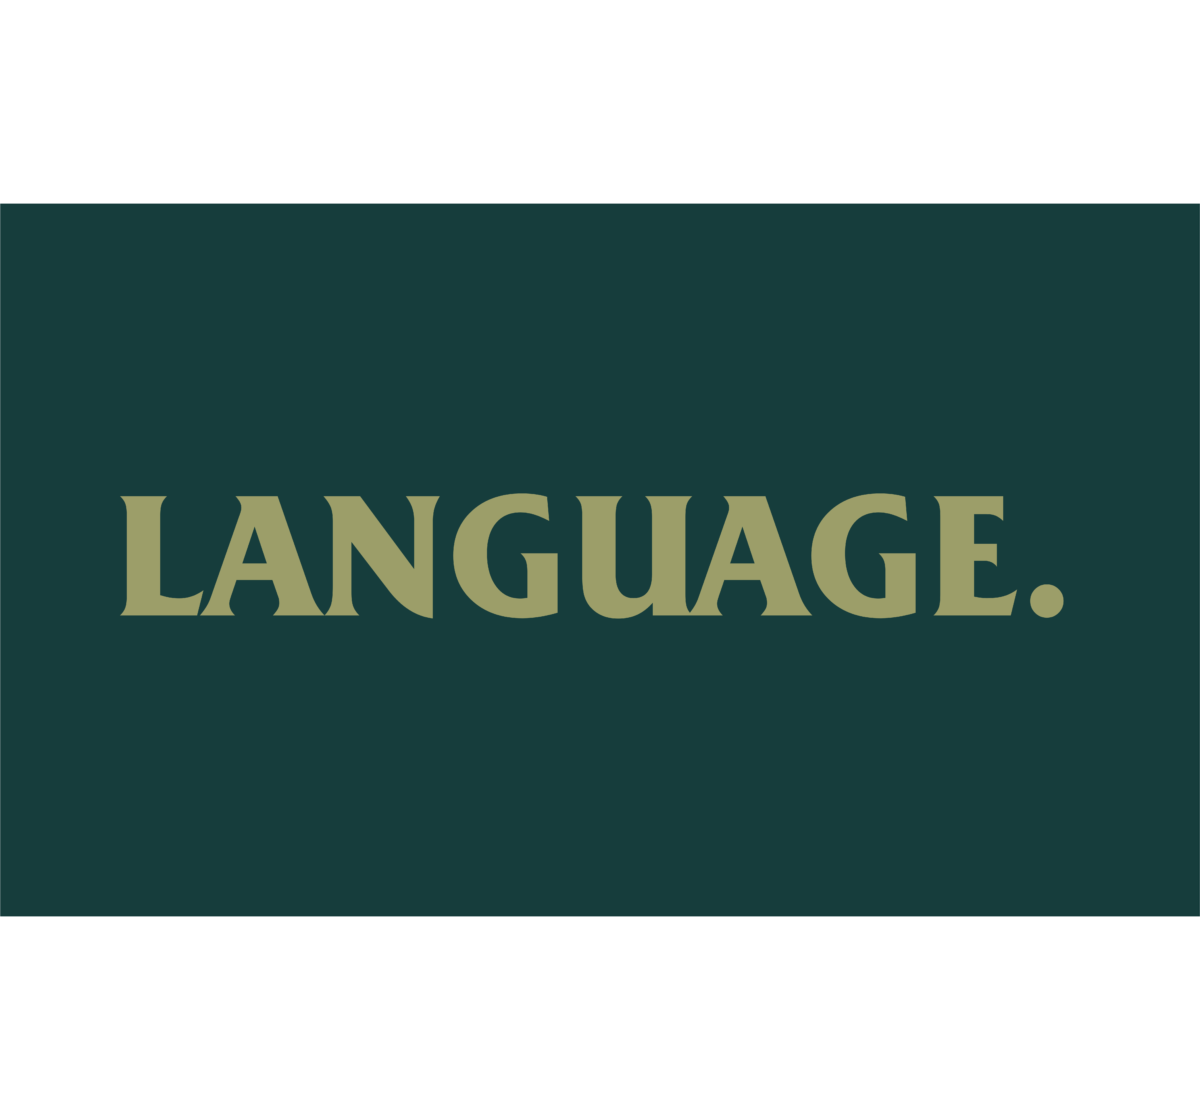 Here is why language is incredibly important and special.